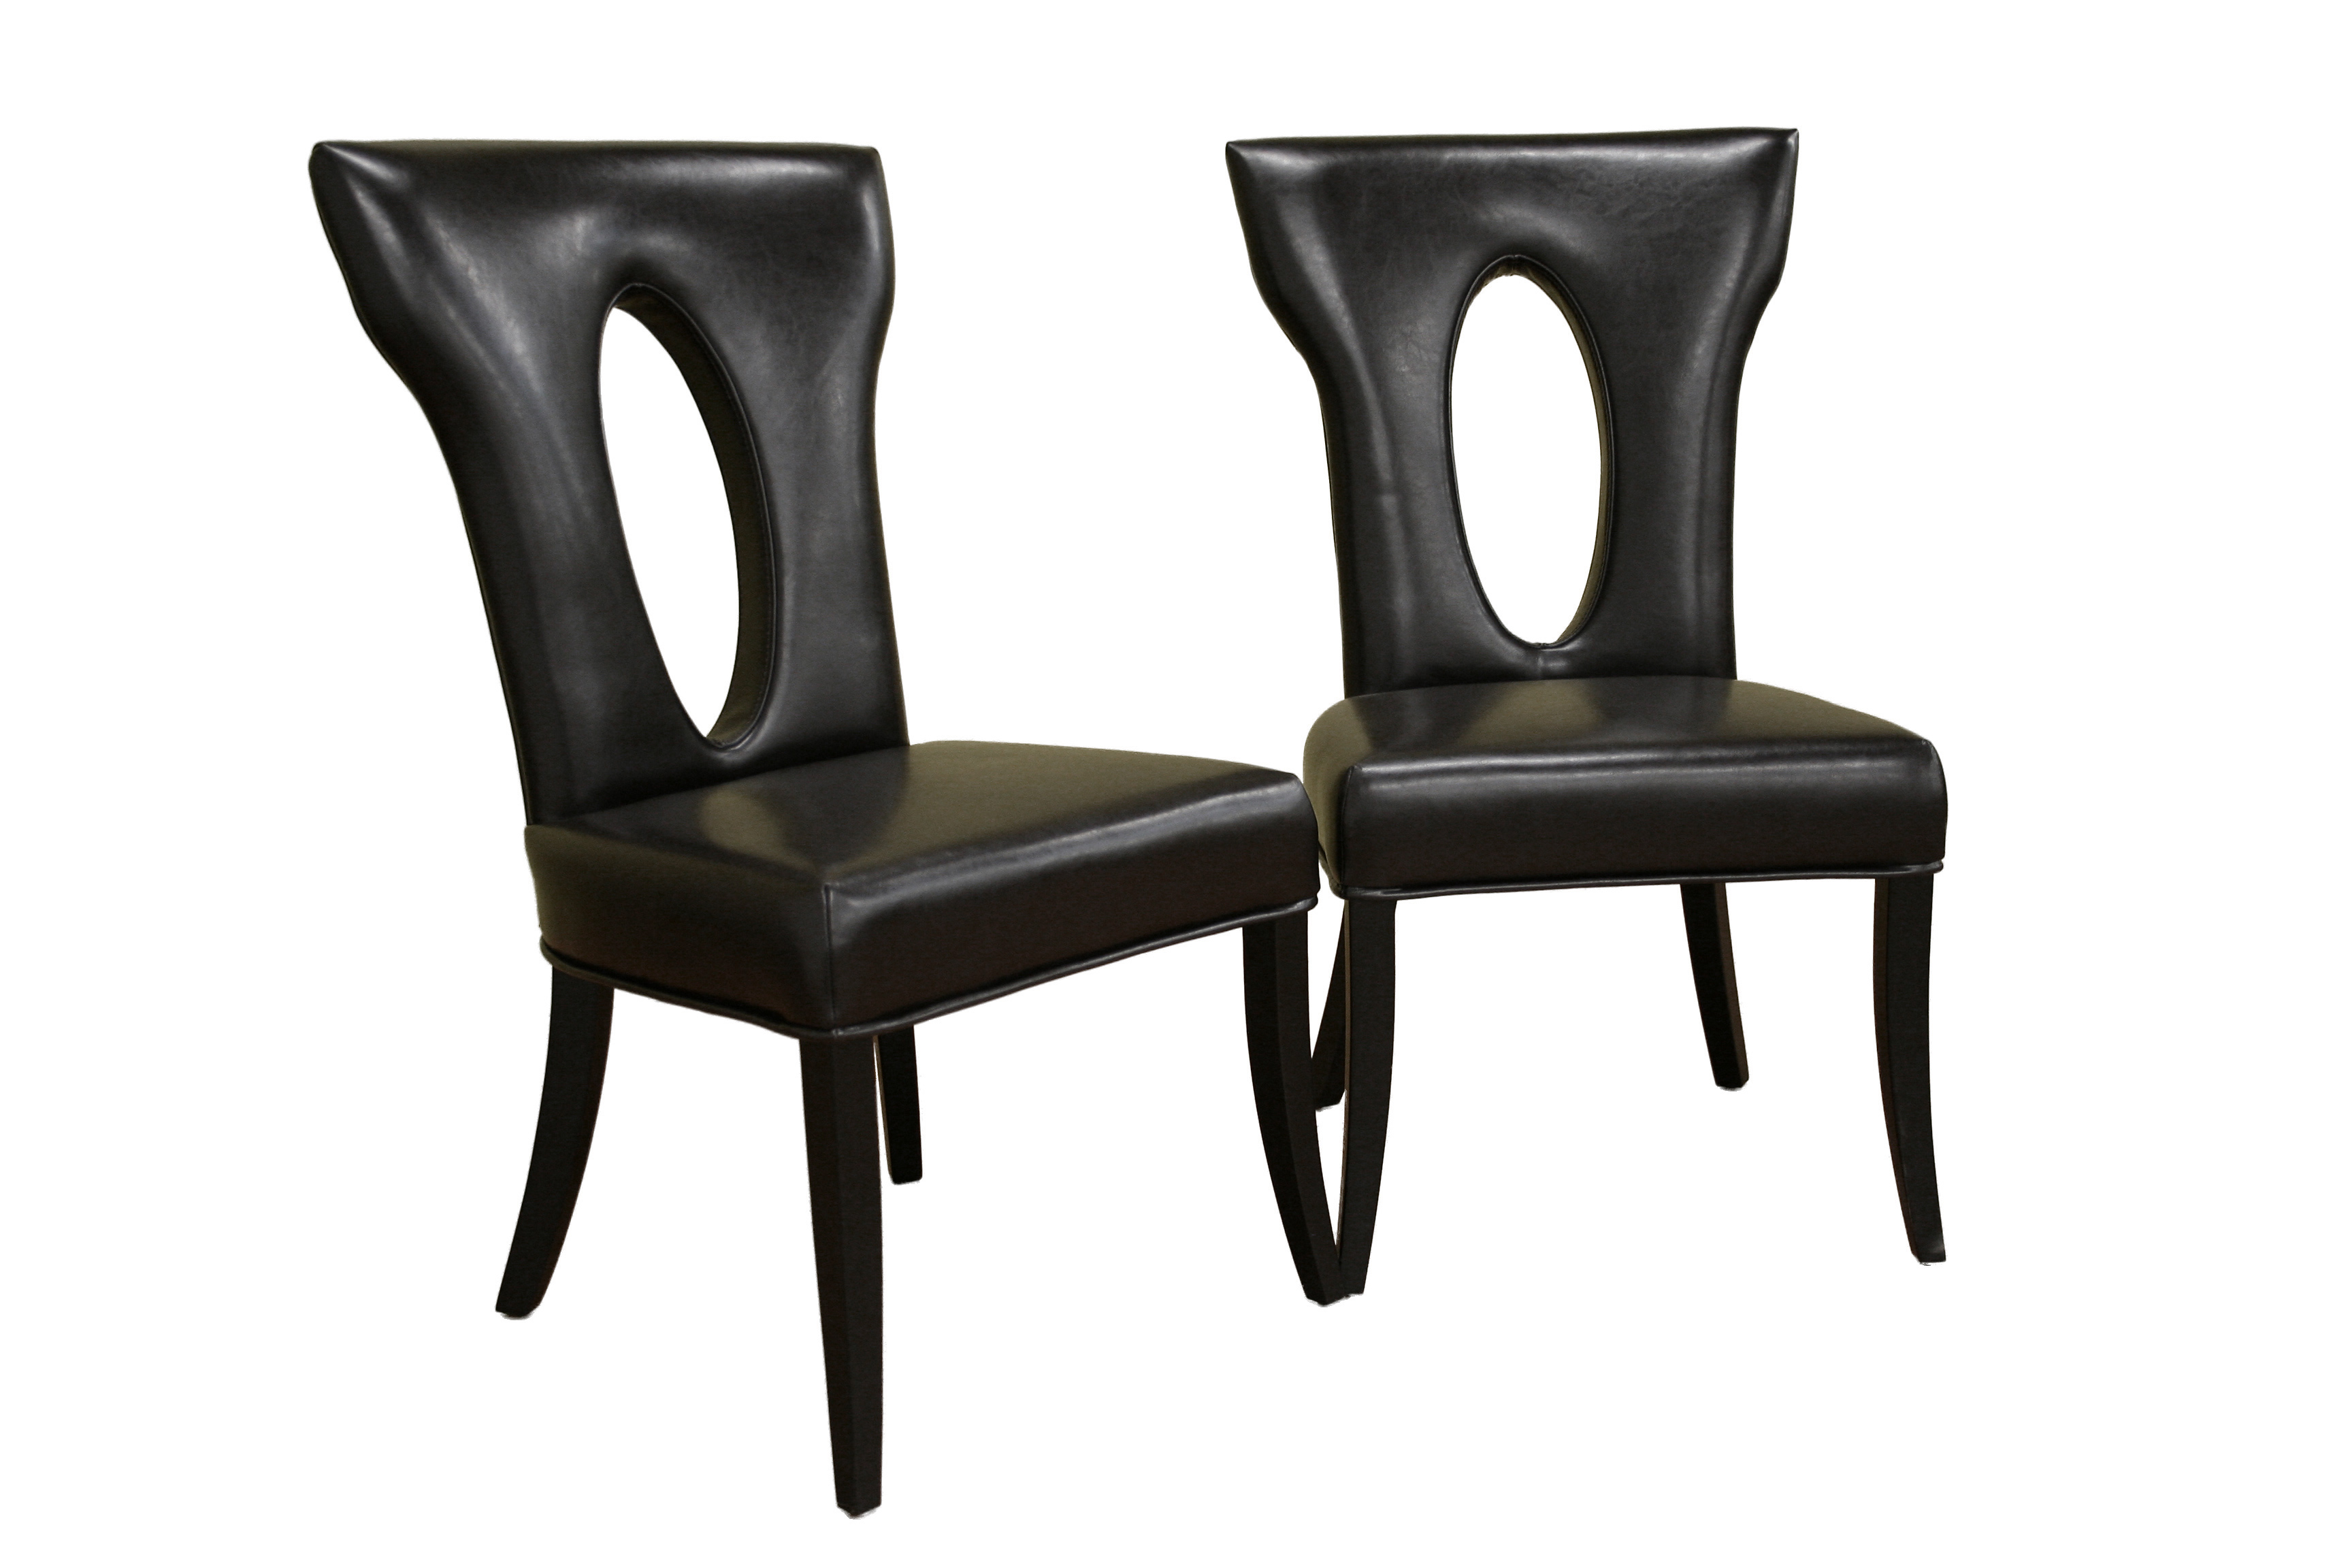 Black High Back Dining Chairs Chair Pads Cushions